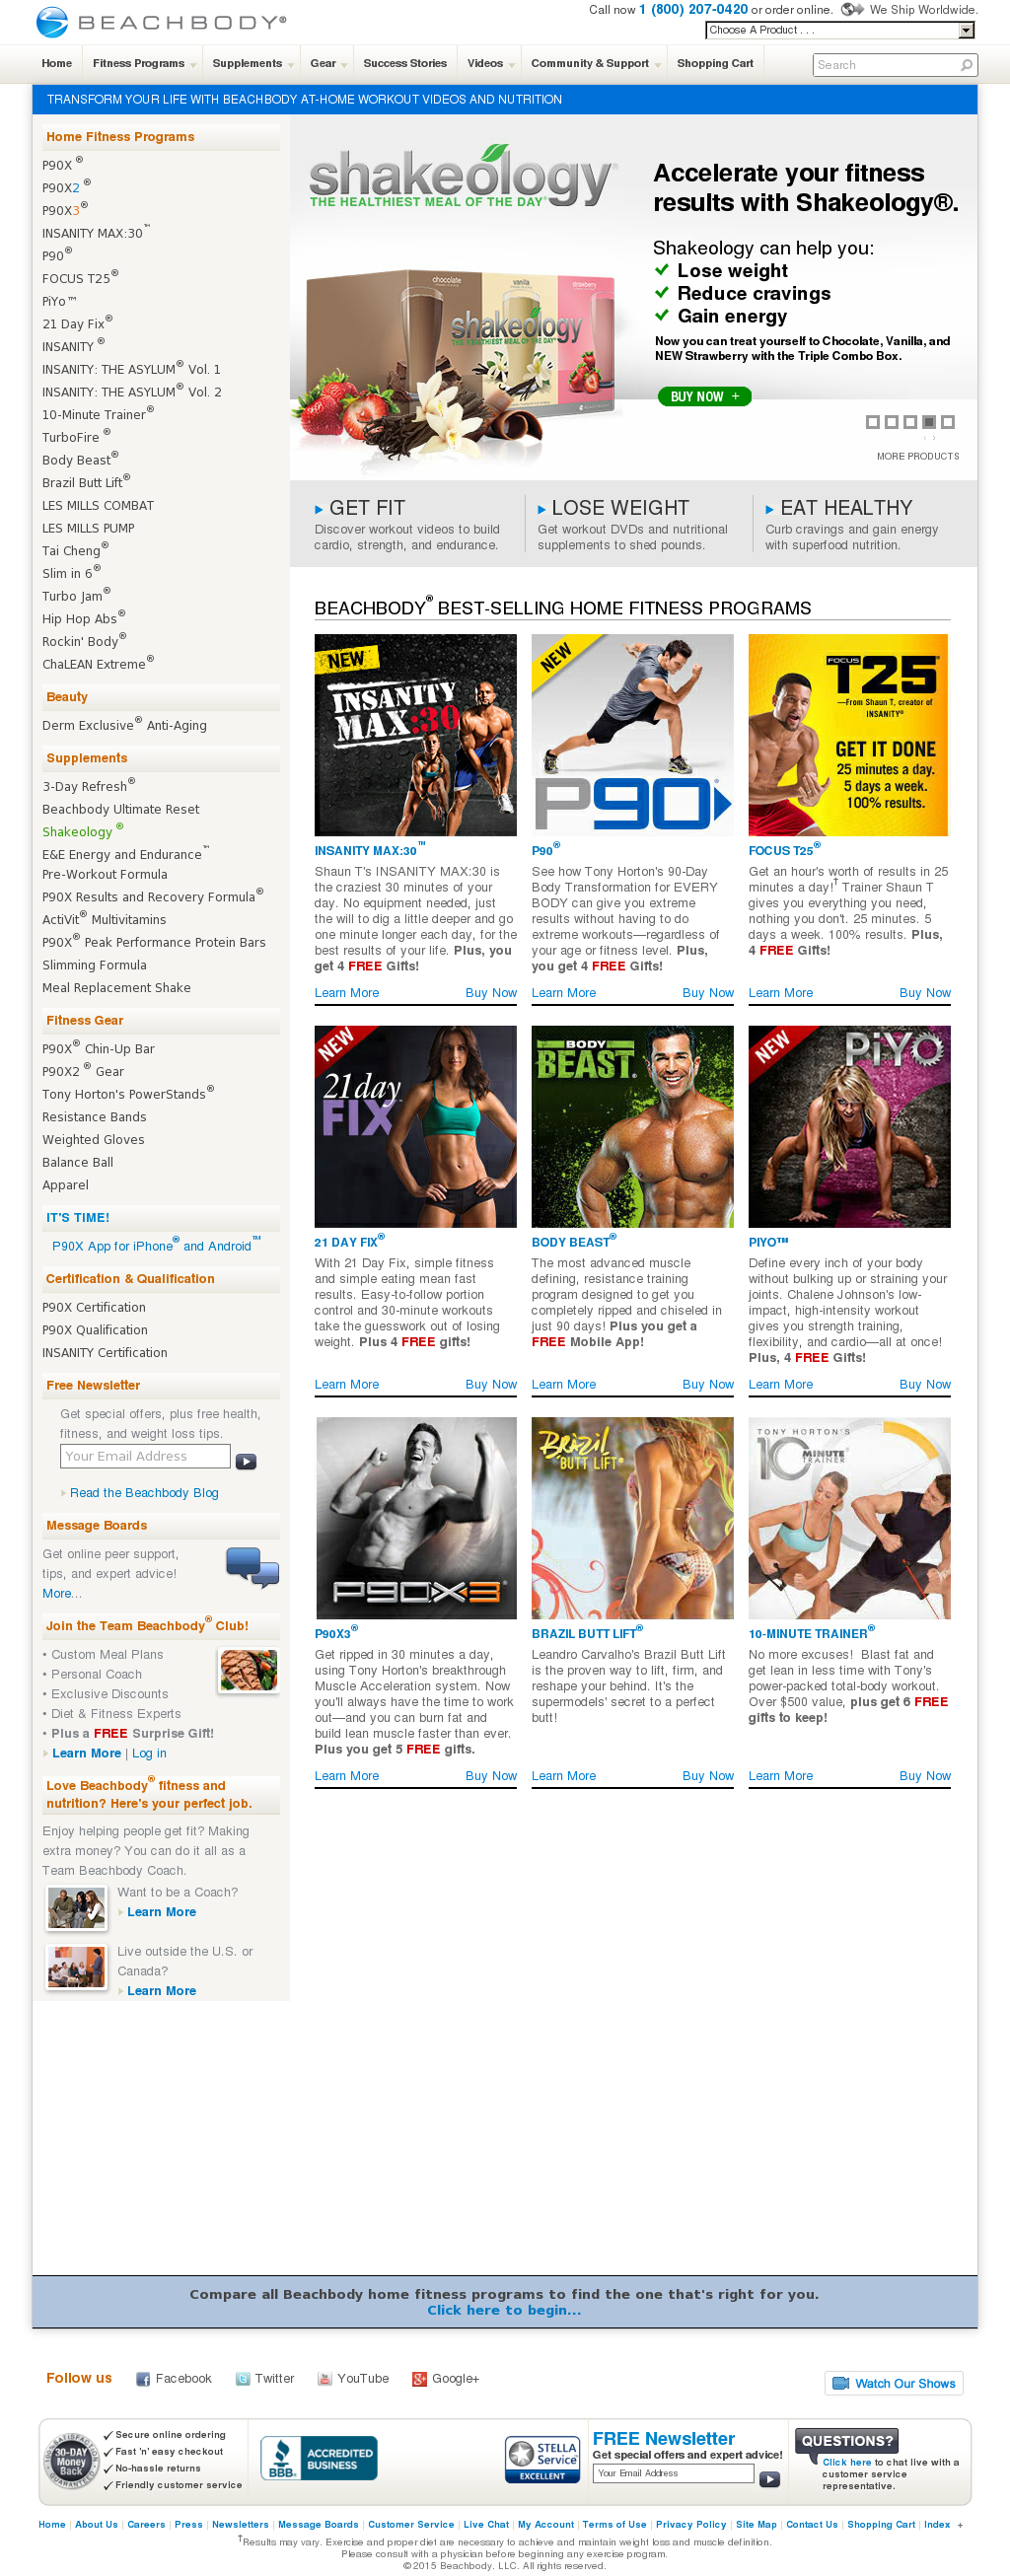 Beachbody Competitors, Revenue and Employees - Owler Company Profile